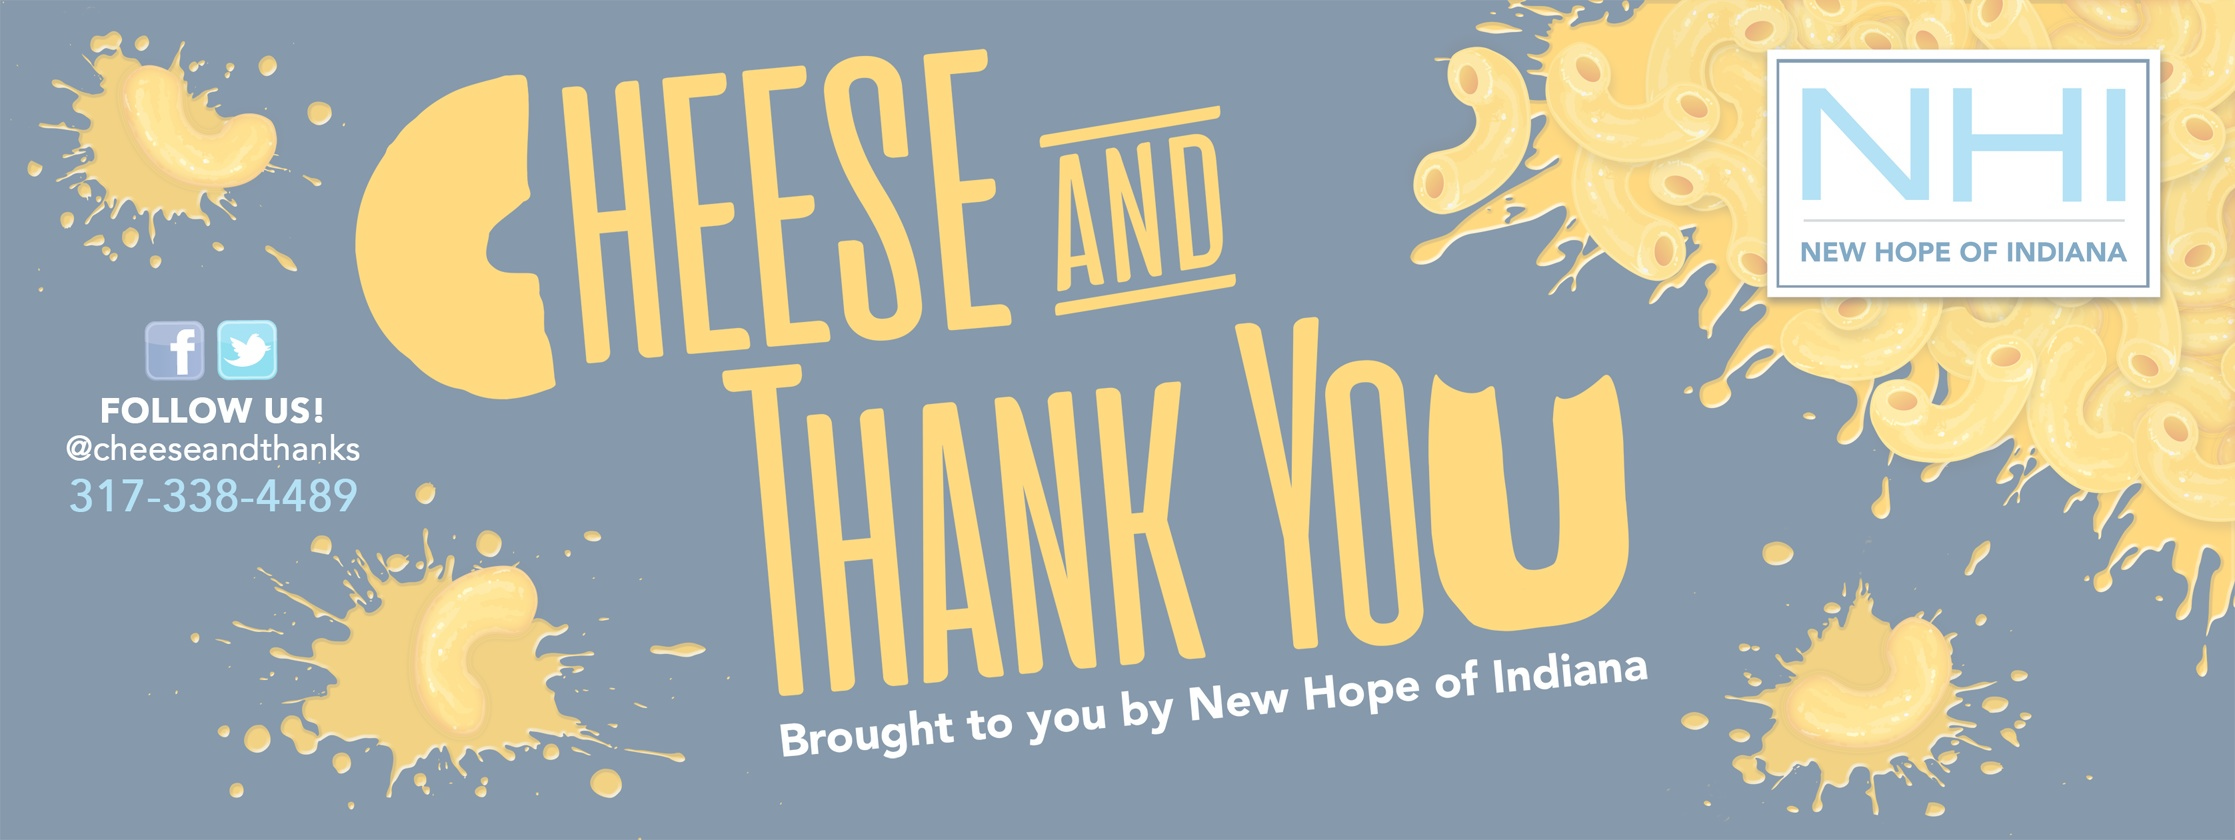 Cheese and Thank You